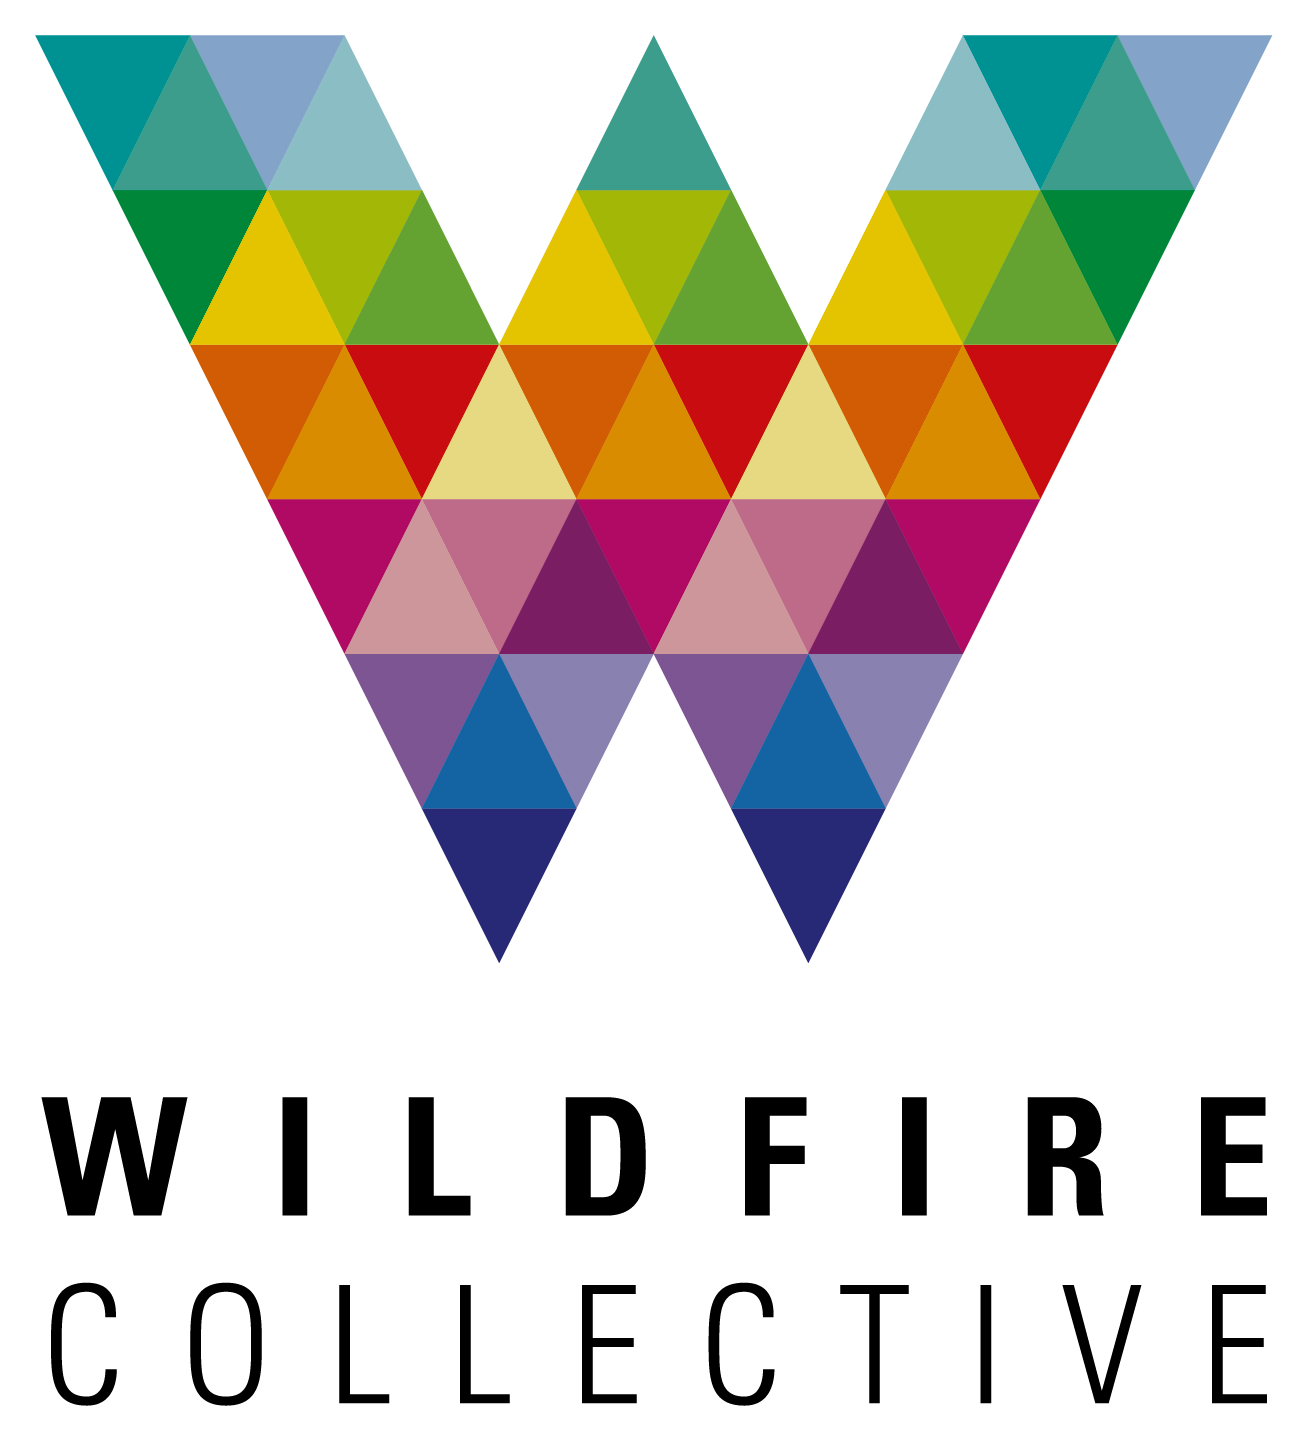 Wildfire Collective